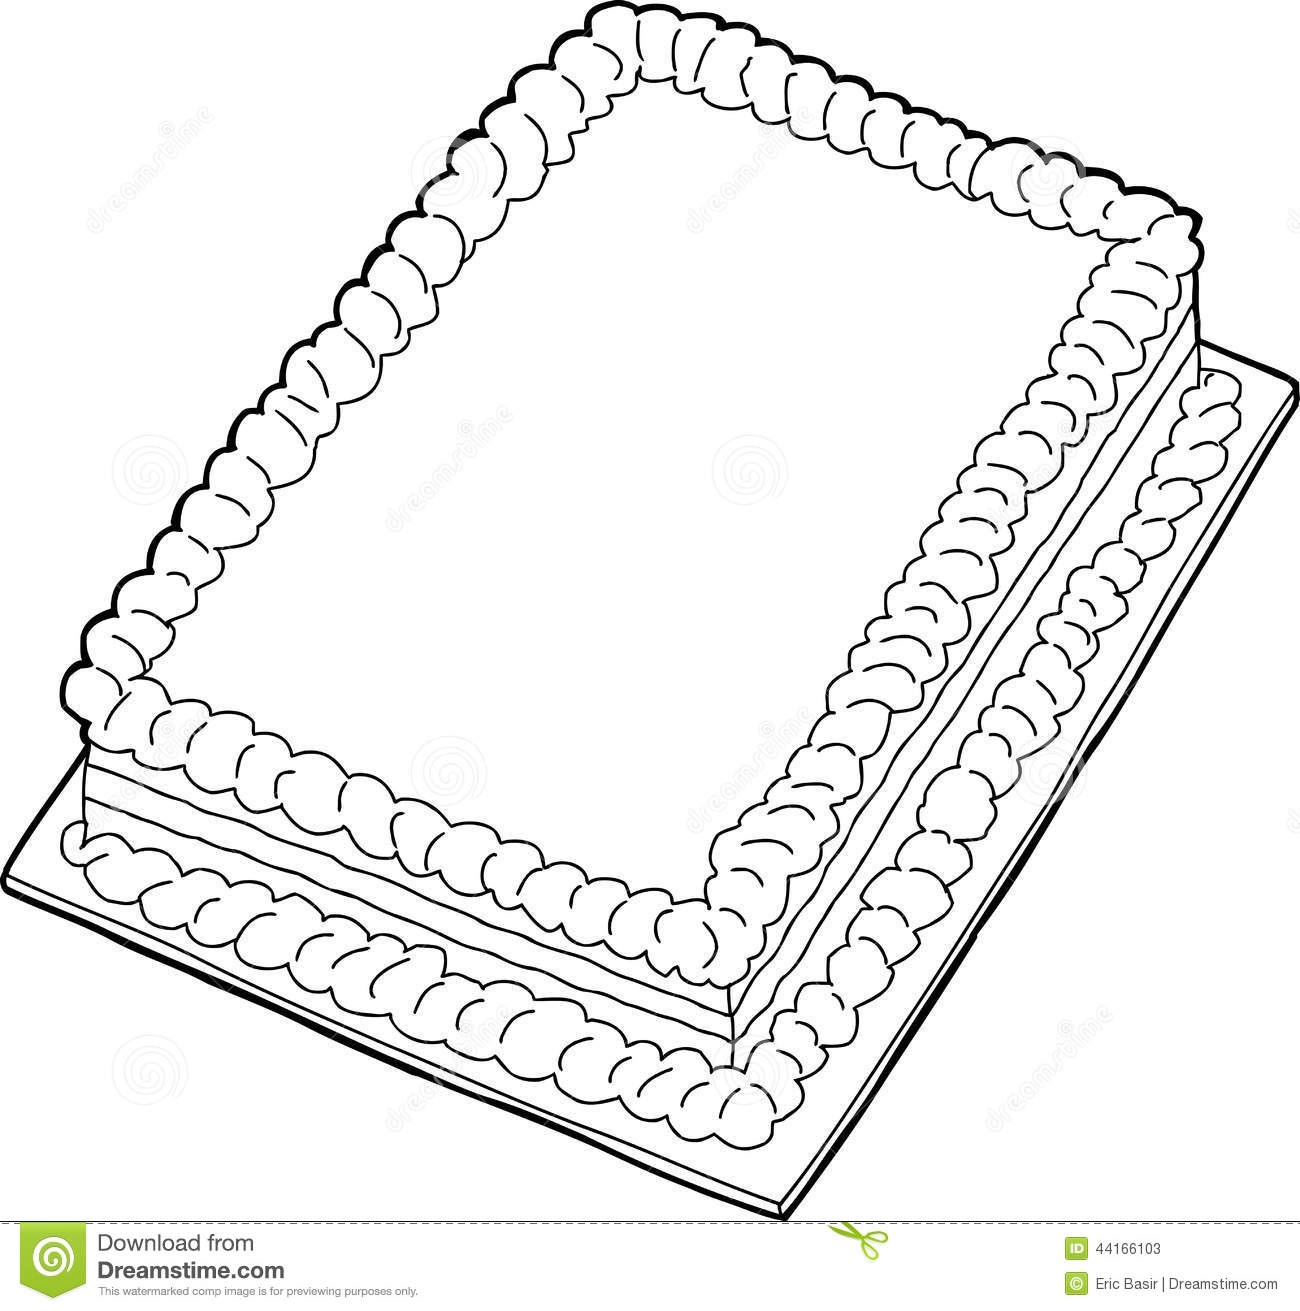 Outlined Cake Stock Vector Illustration Of Blank Icing